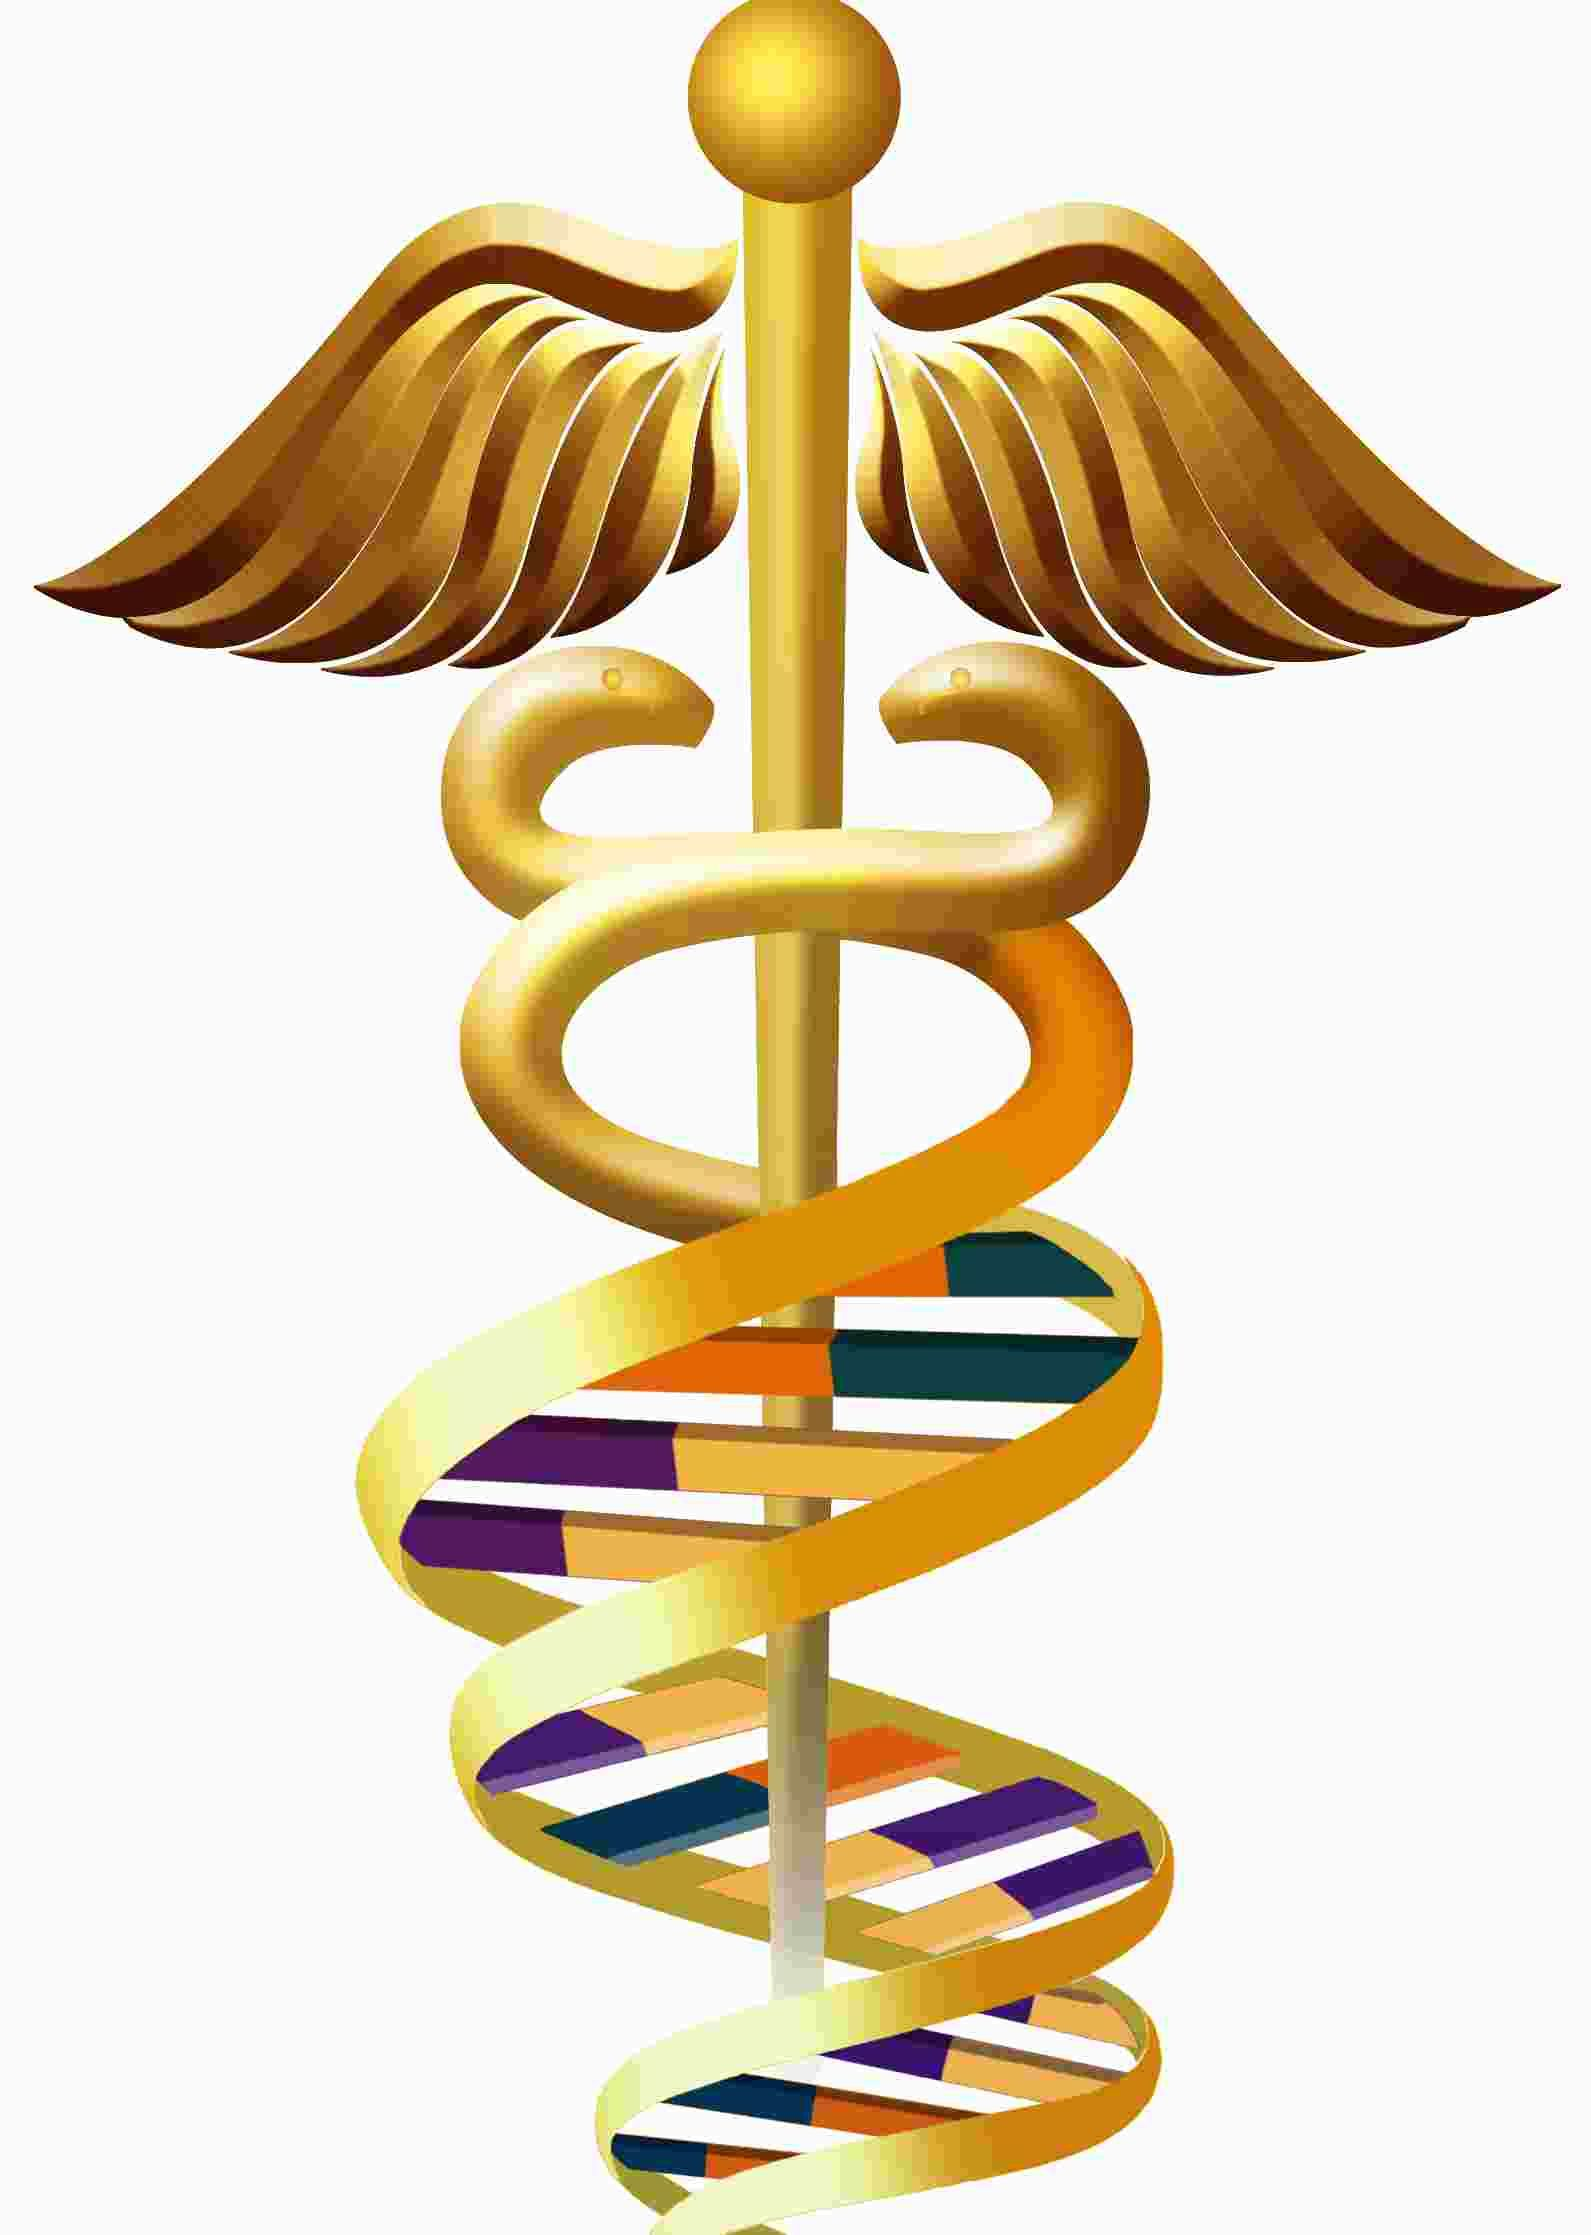 Dna caduceus tattoos pinterest tatting tattoo and body art as ive mentioned elsewhere it is best to see a medical geneticist whenever possible to get diagnosed with any form of ehlers danlos syndrome so as to rule buycottarizona Image collections